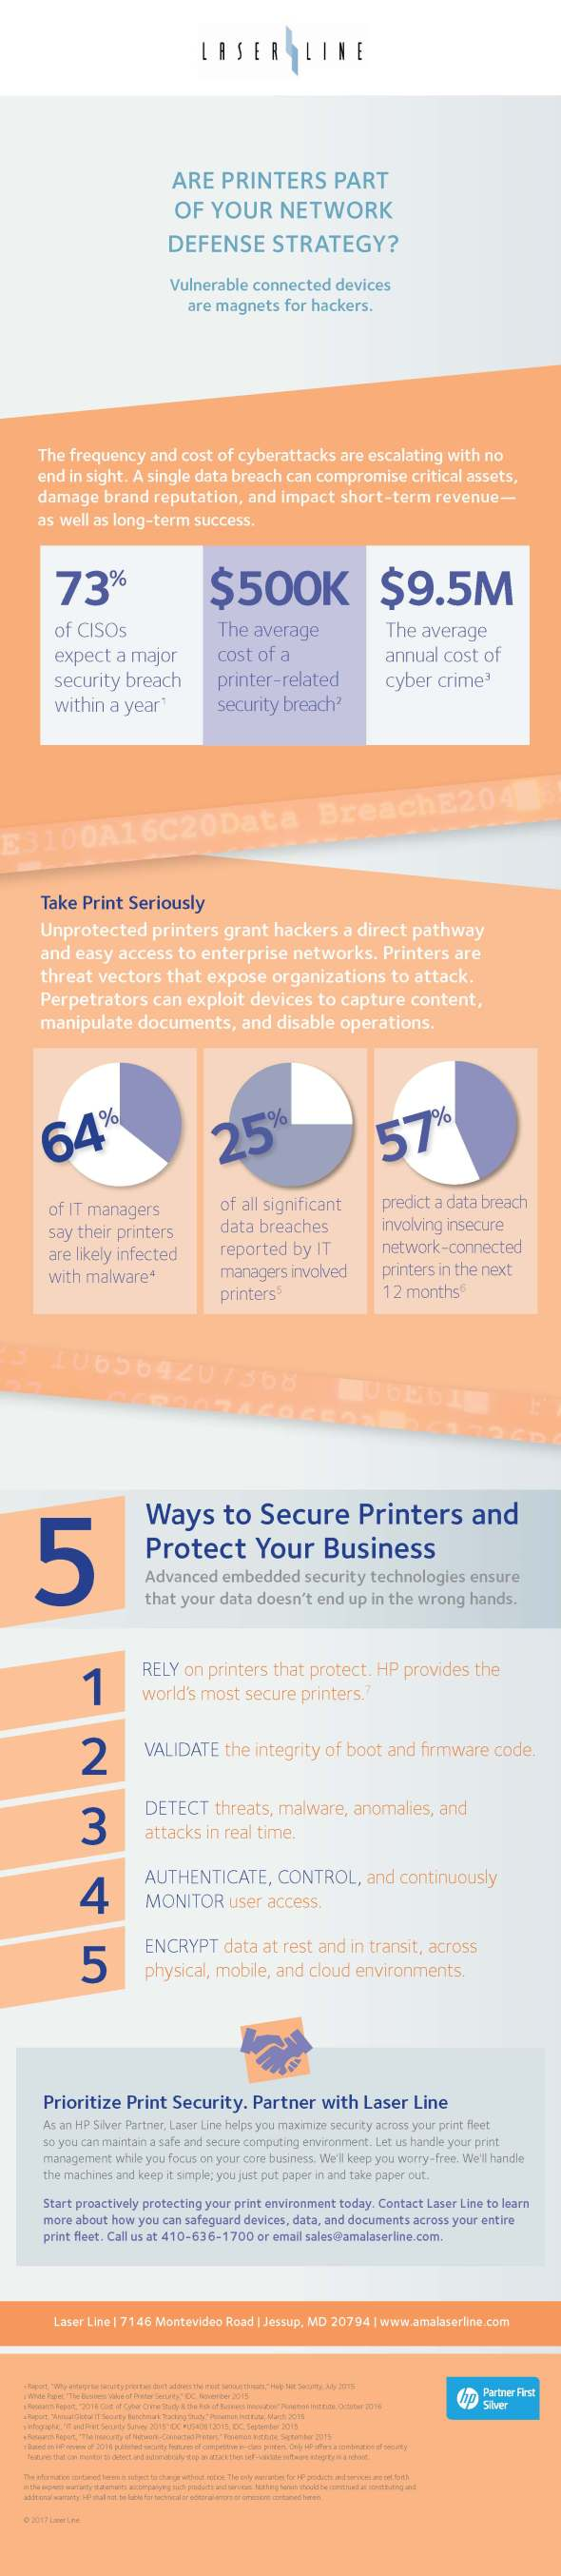 HP Secure printing - SECURE your DEVICES, DATA AND DOCUMENTS